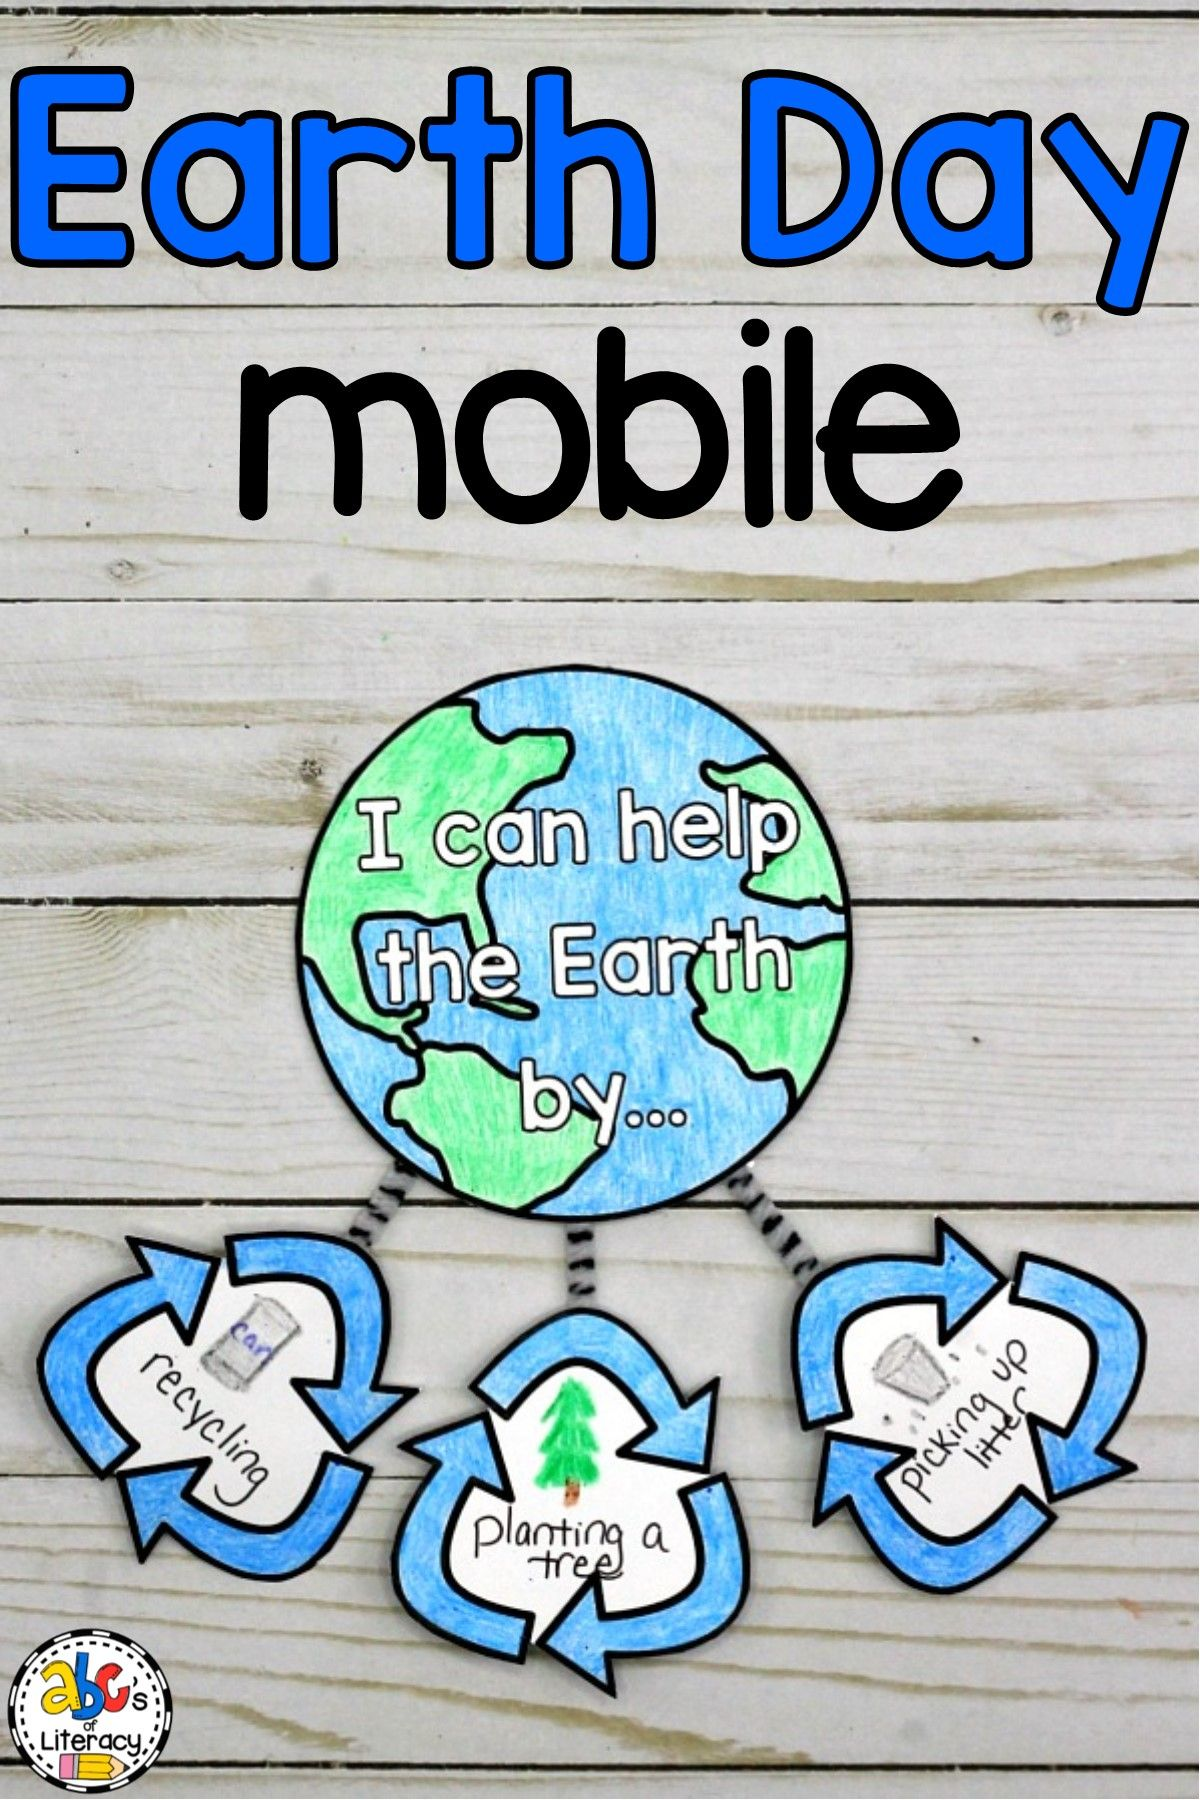 Earth Day Activities Earth Day Craft Writing Prompt Reader More Earth Day Activities Earth Day Crafts Earth Day Posters